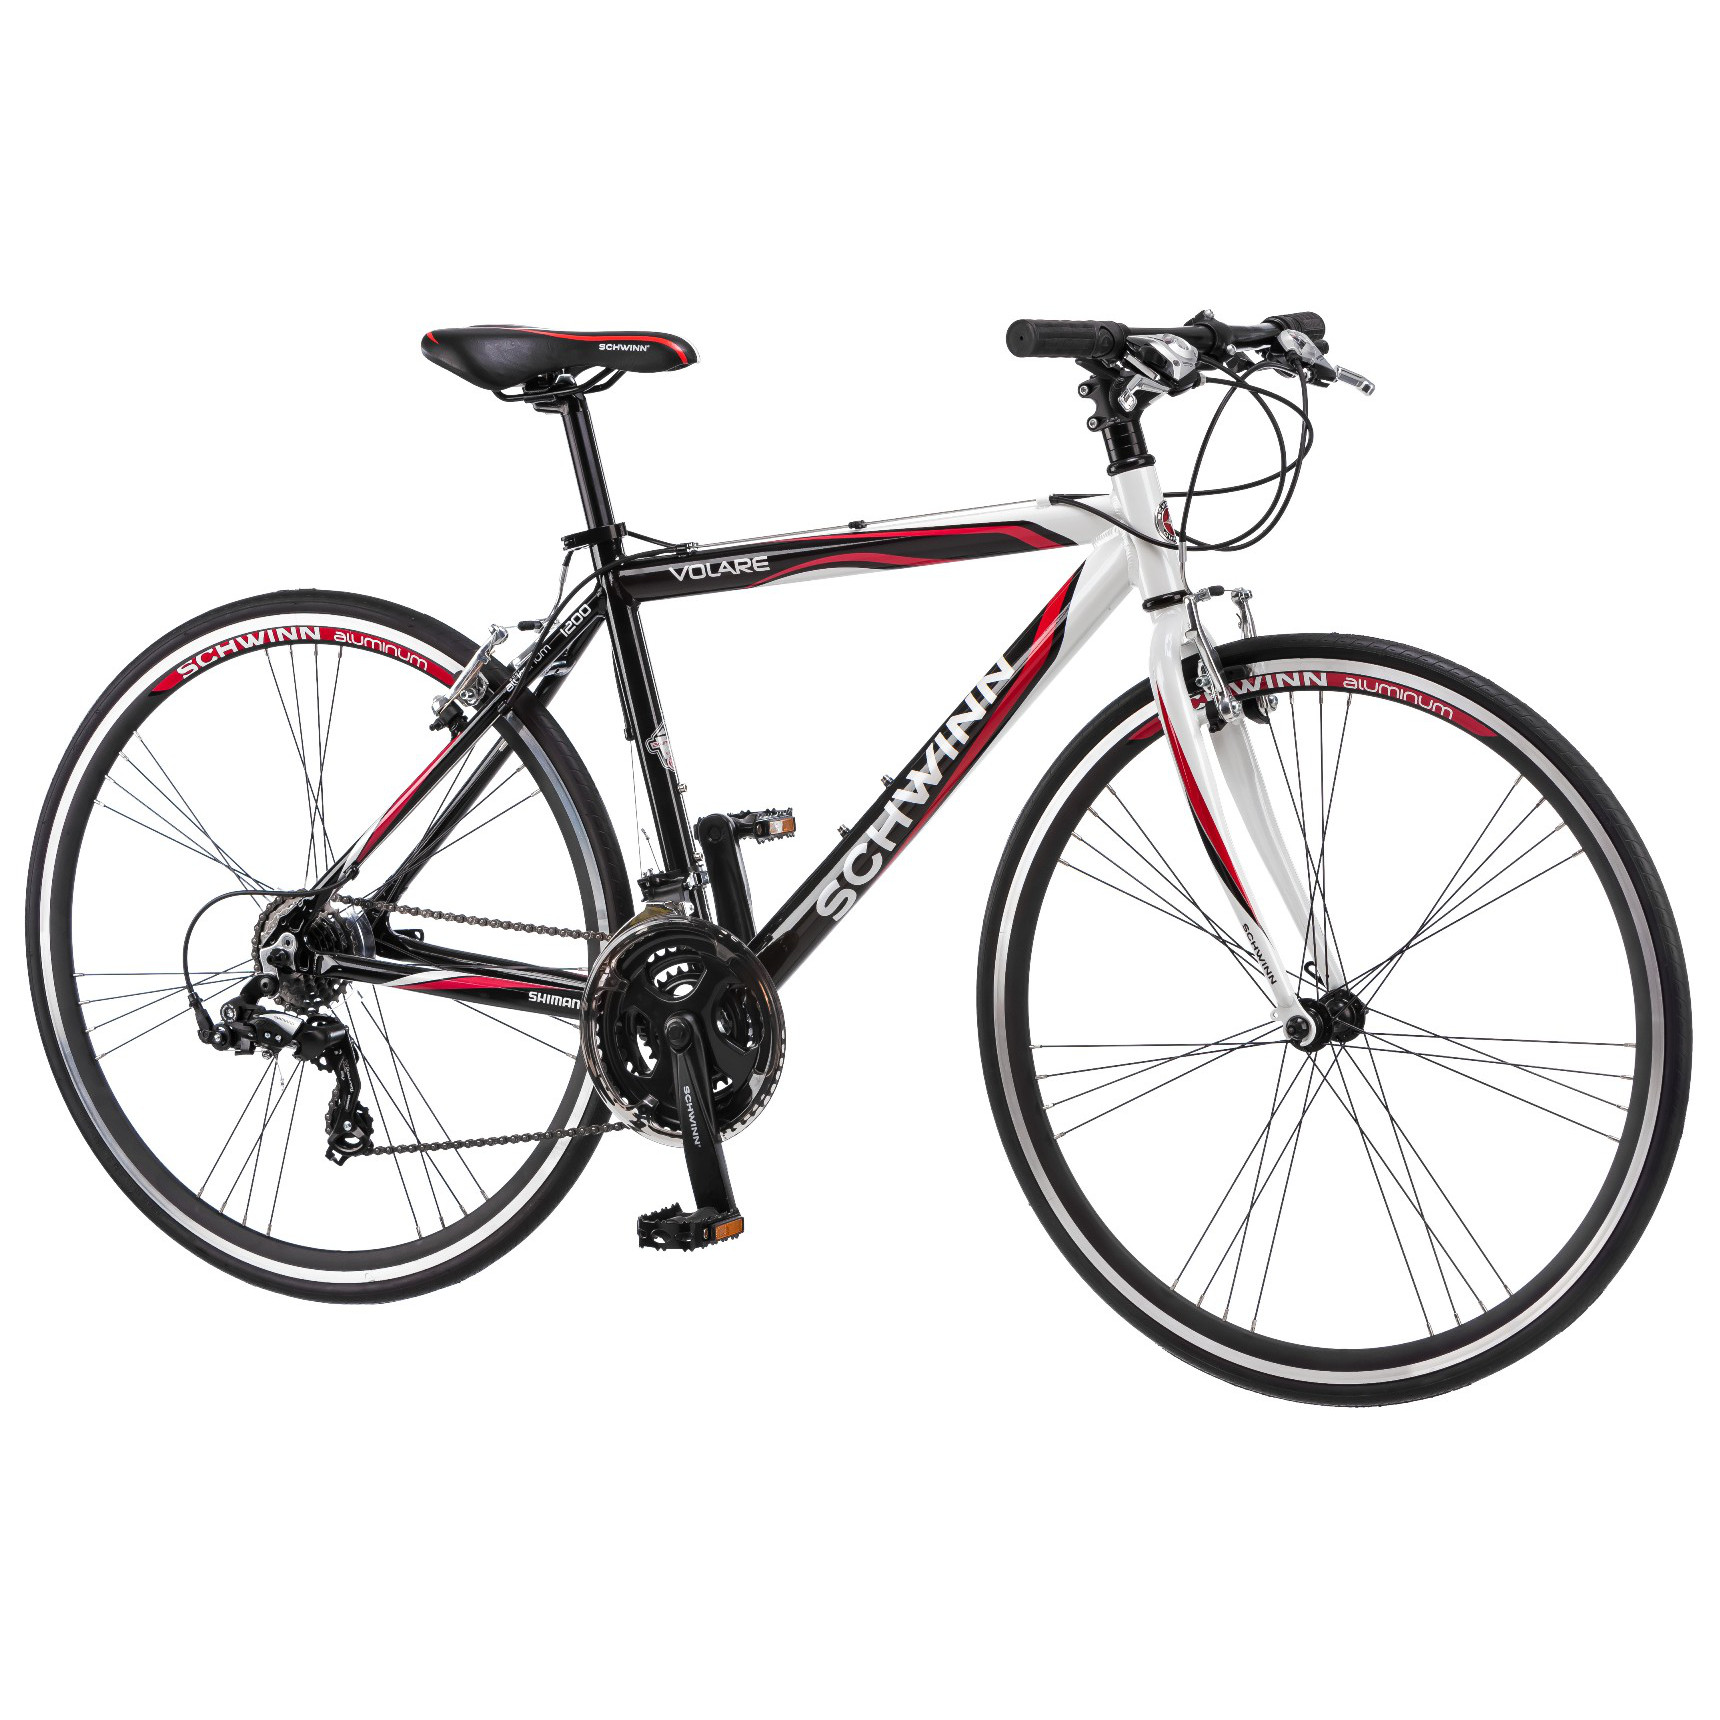 Schwinn Volare 700c Mens Road Bike